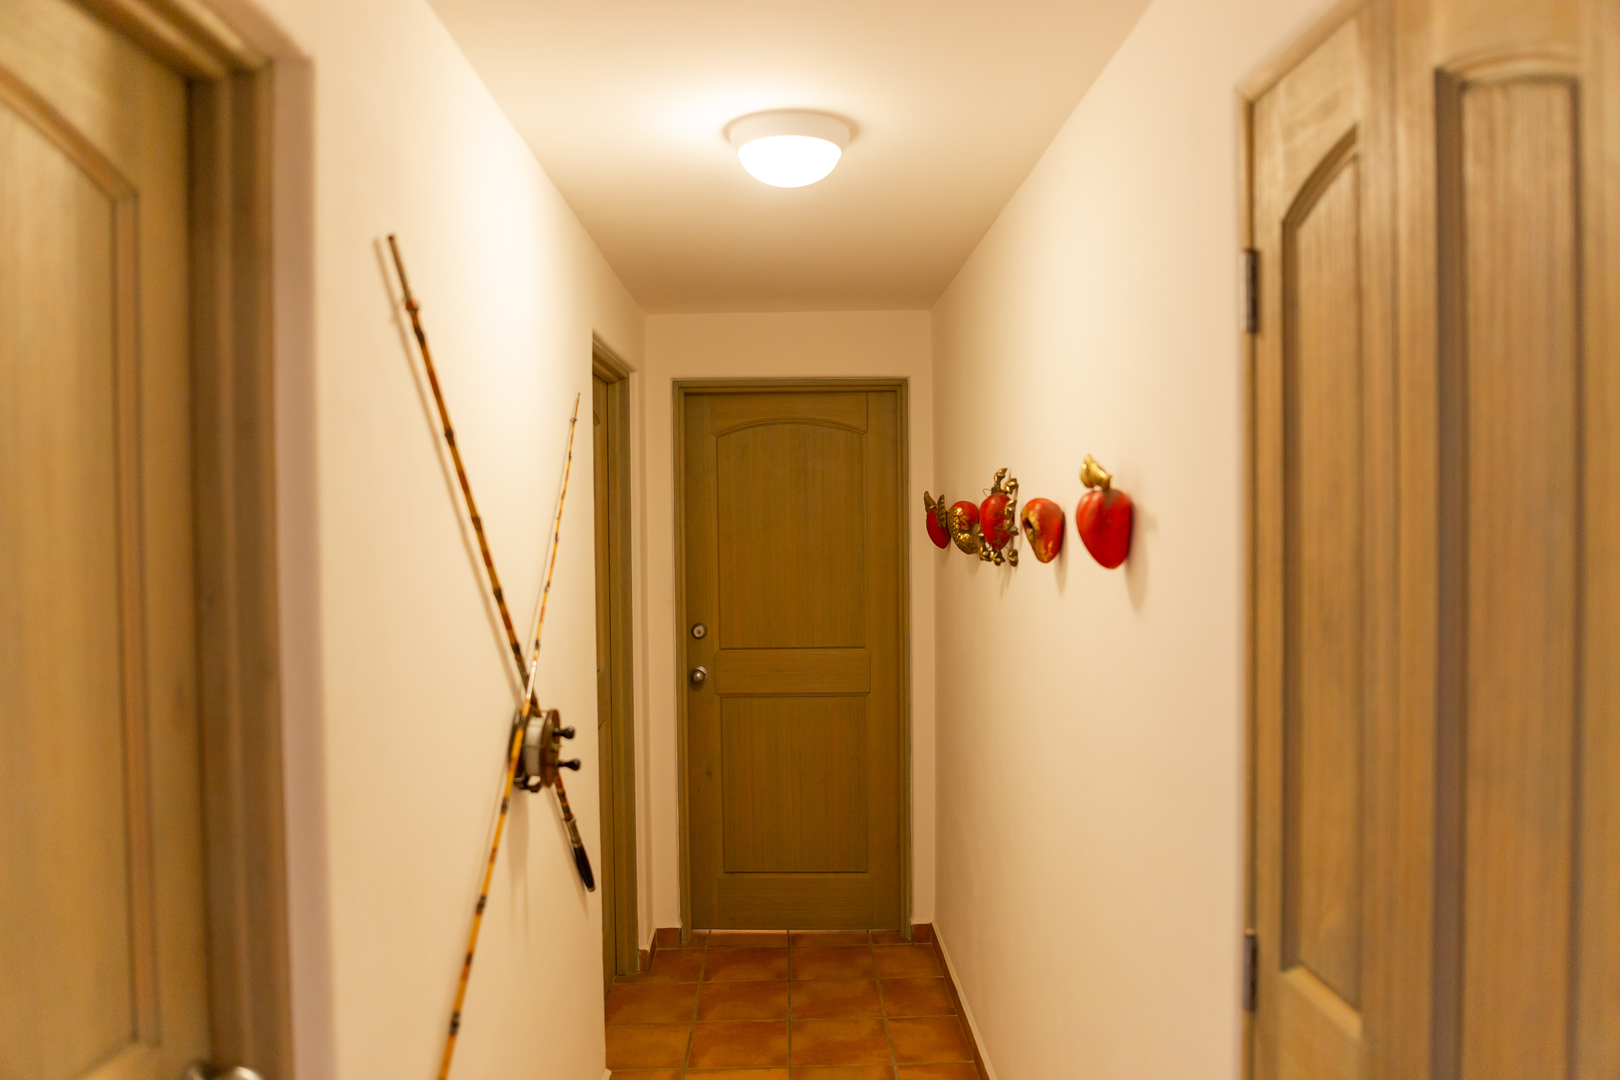 HALLWAY TO LAUNDRY AND GUEST BEDROOM